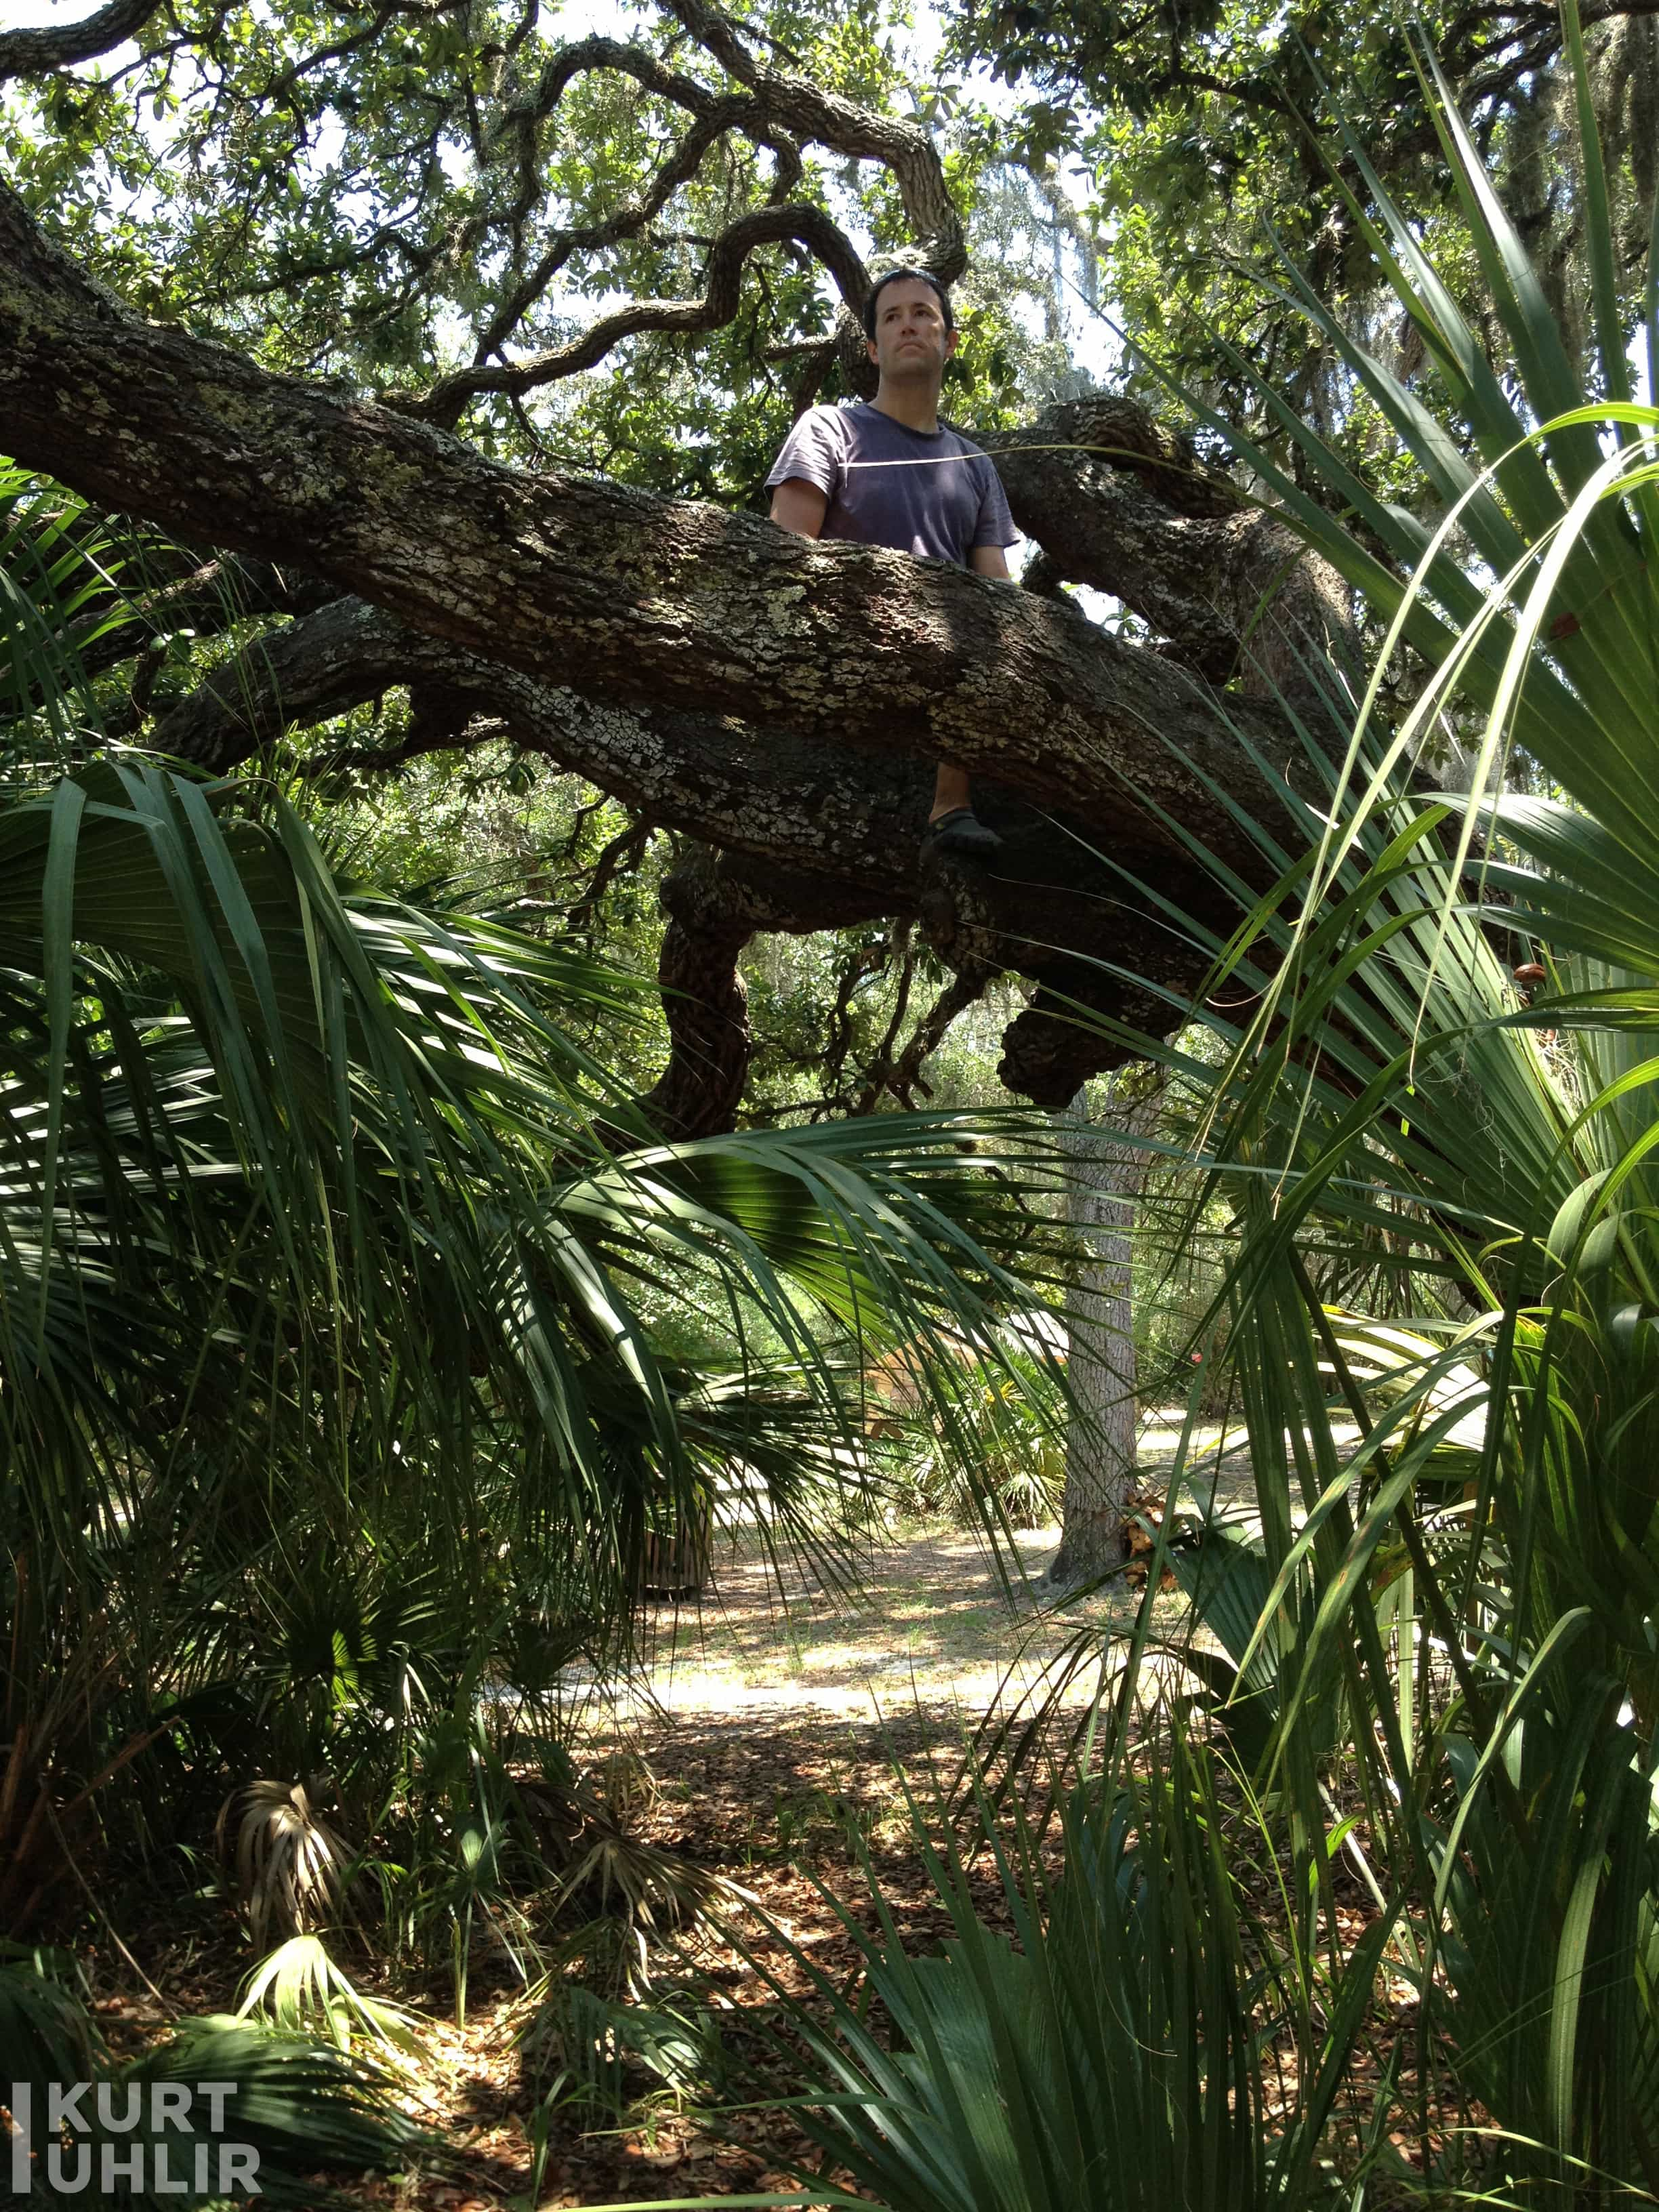 Kurt Uhlir climbing tree on Manatee River in Florida - 2012